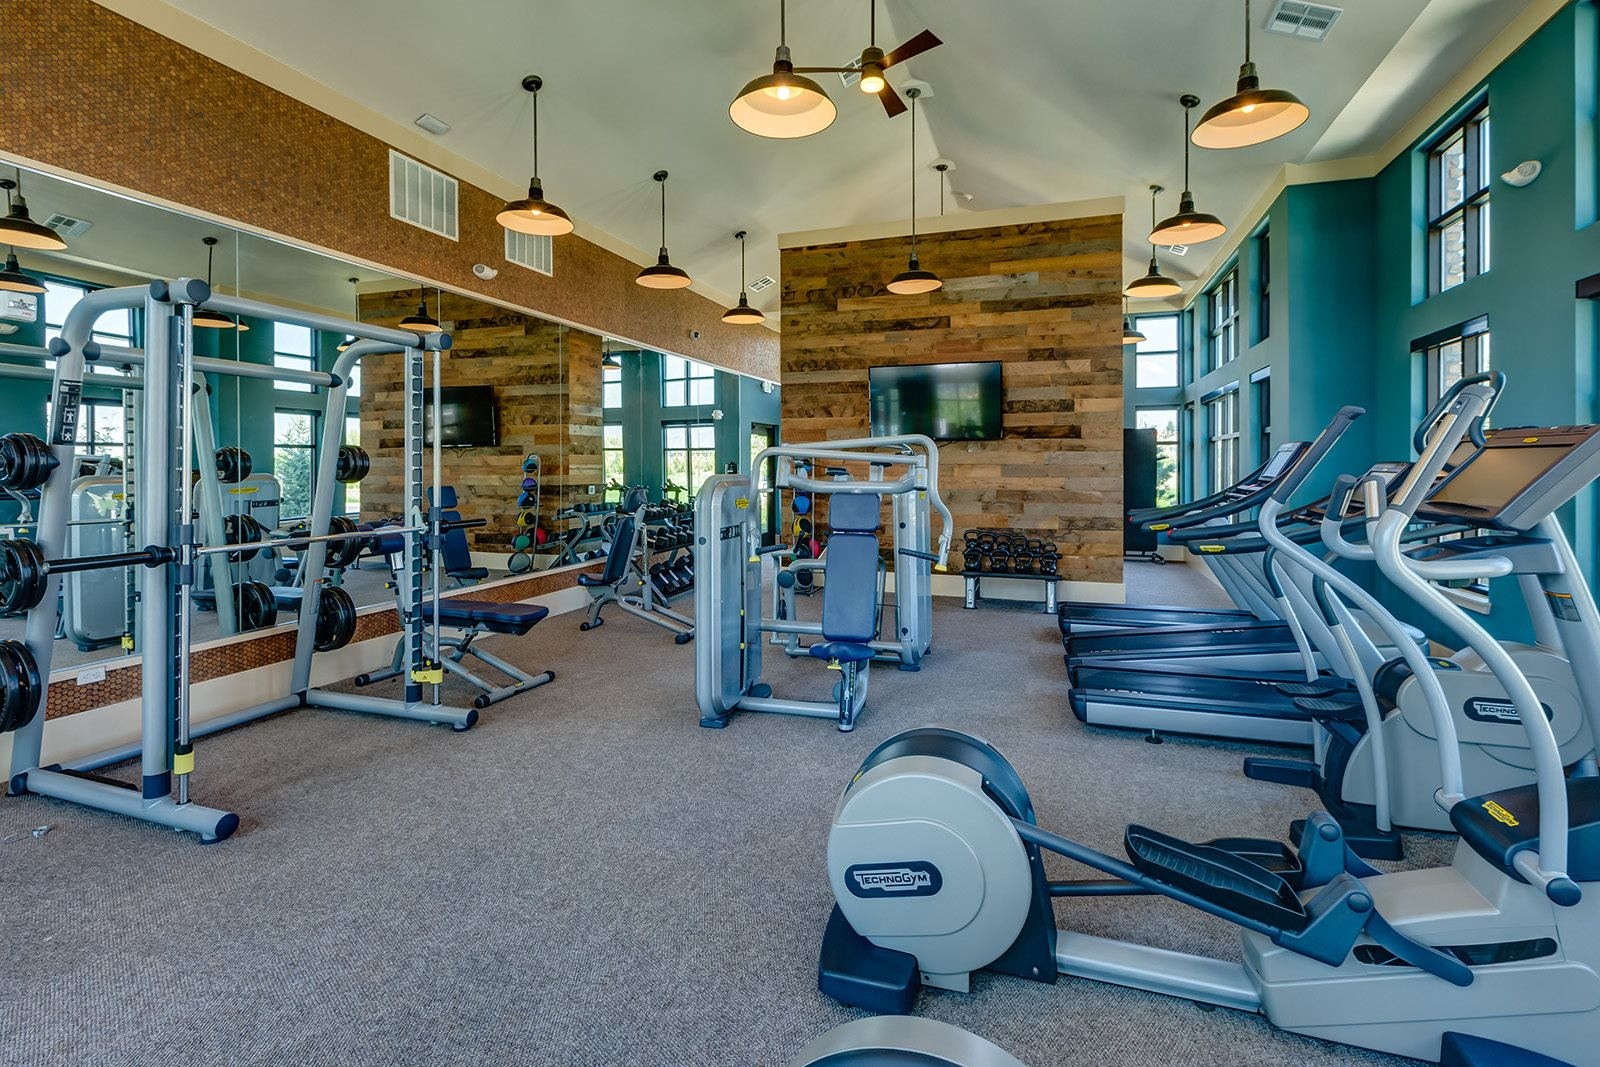 Fitness center at Windsor at Pinehurst, Lakewood, CO